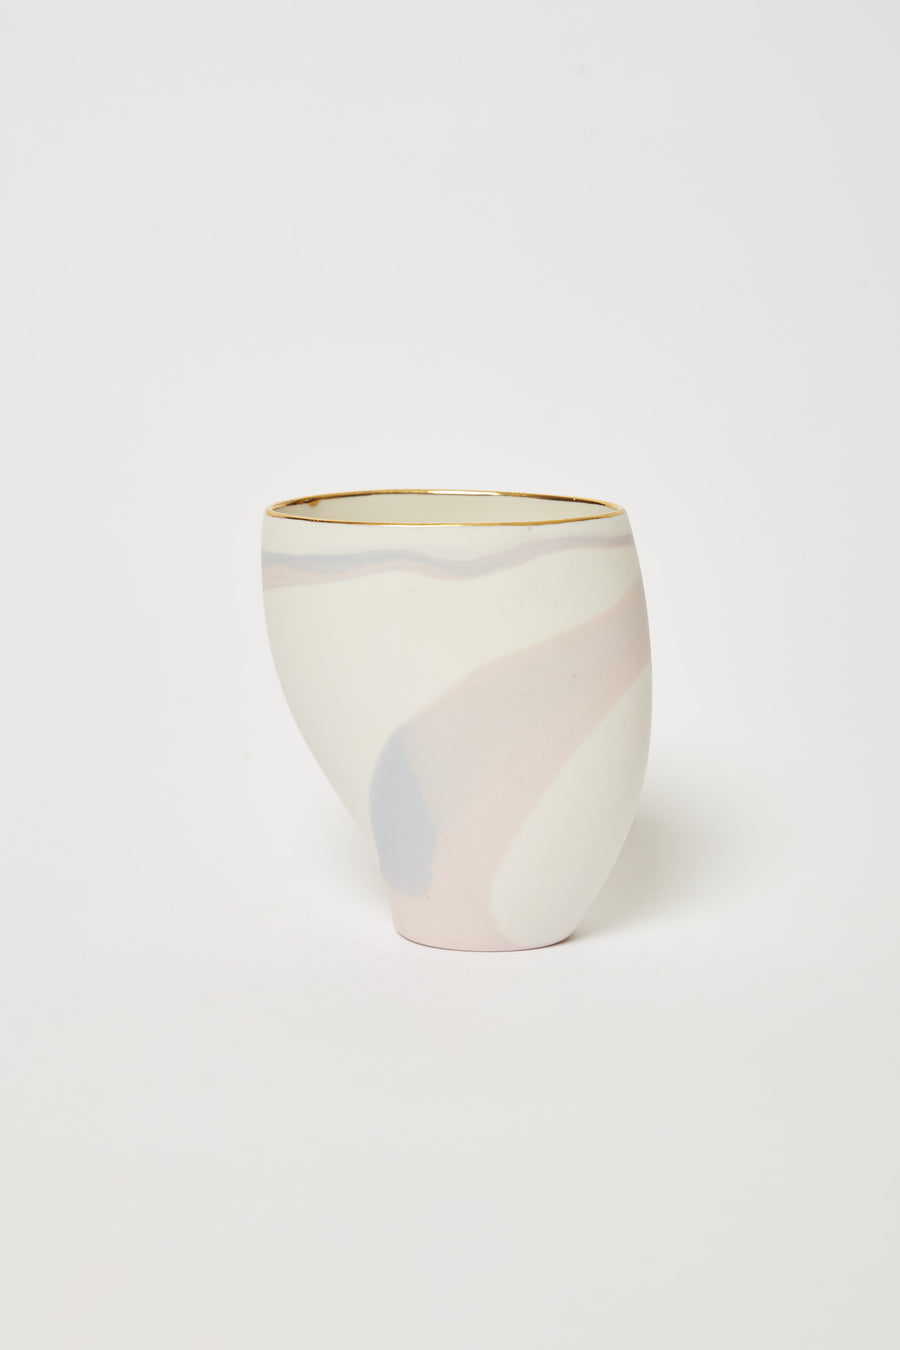 Soovenir Cloud Gold Rim Cup